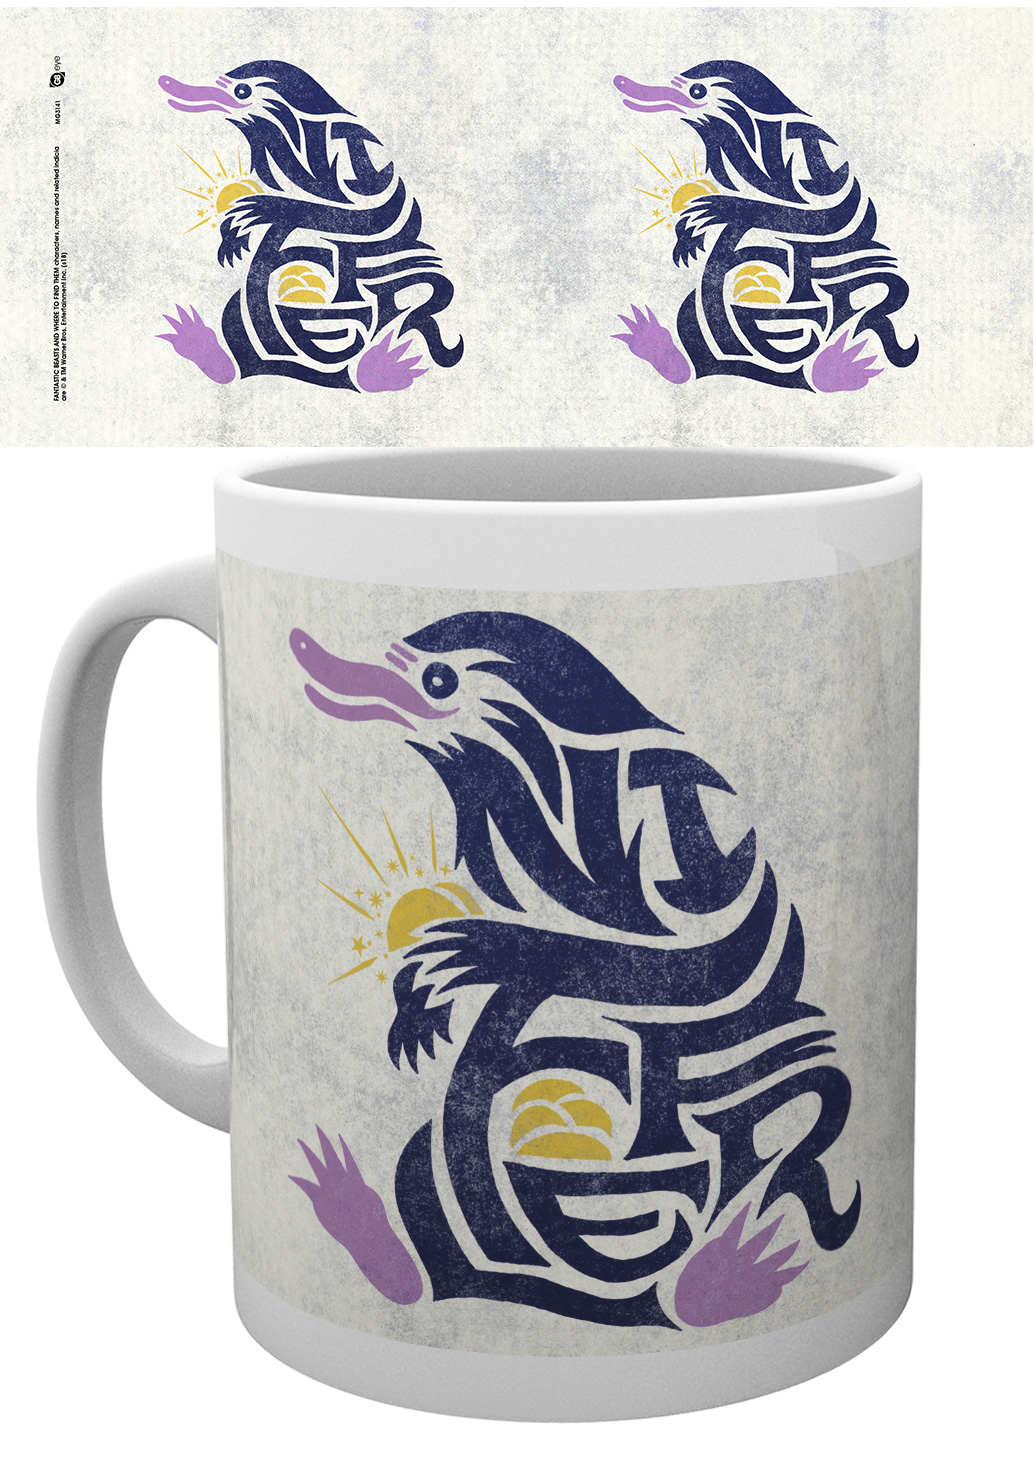 drinkware - 10oz mugs